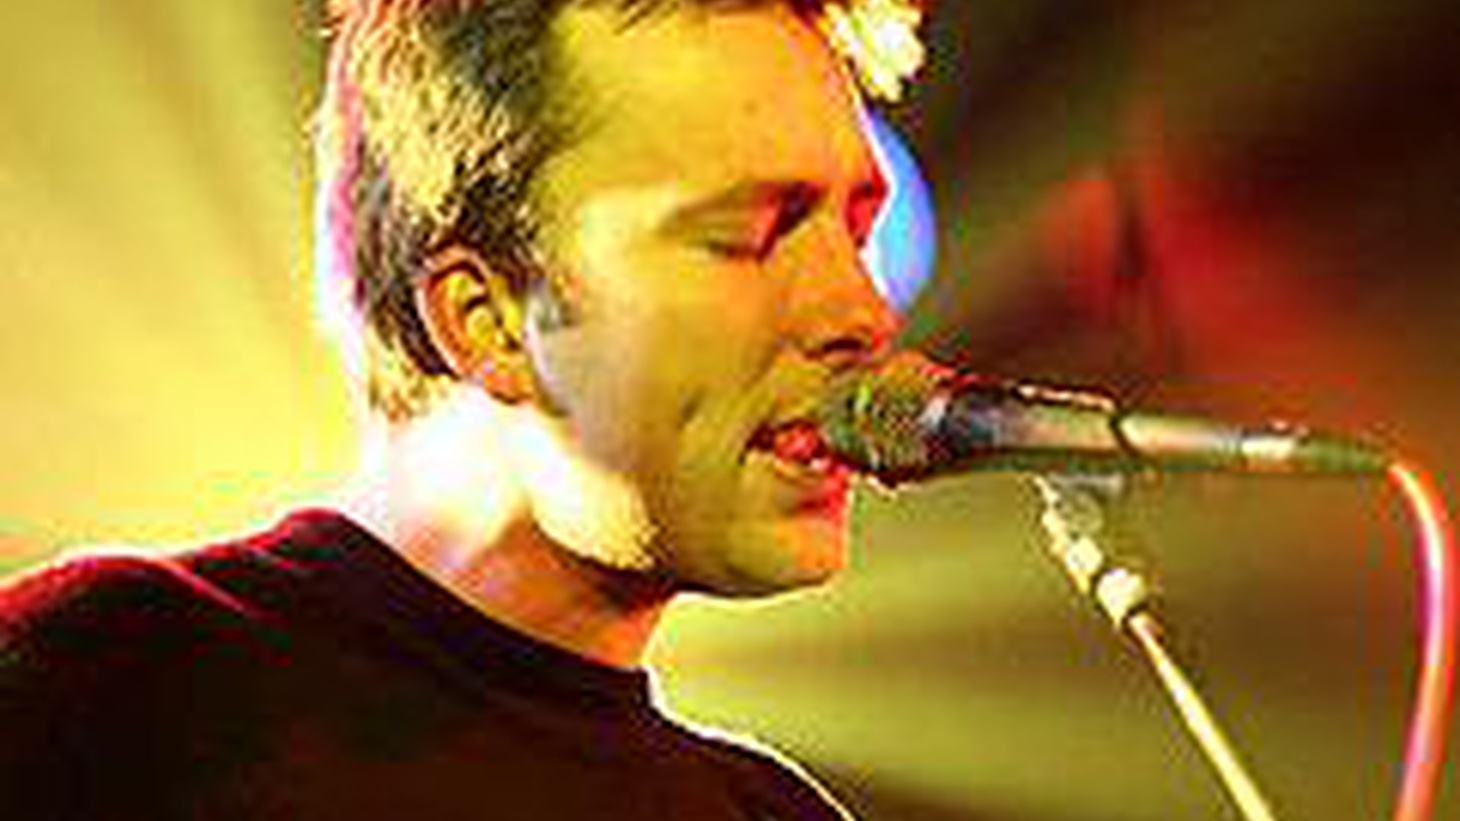 ...from the CD of the same name.   Andy Yorke is the brother of Thom Yorke, Radiohead's frontman. That's were the comparison ends...